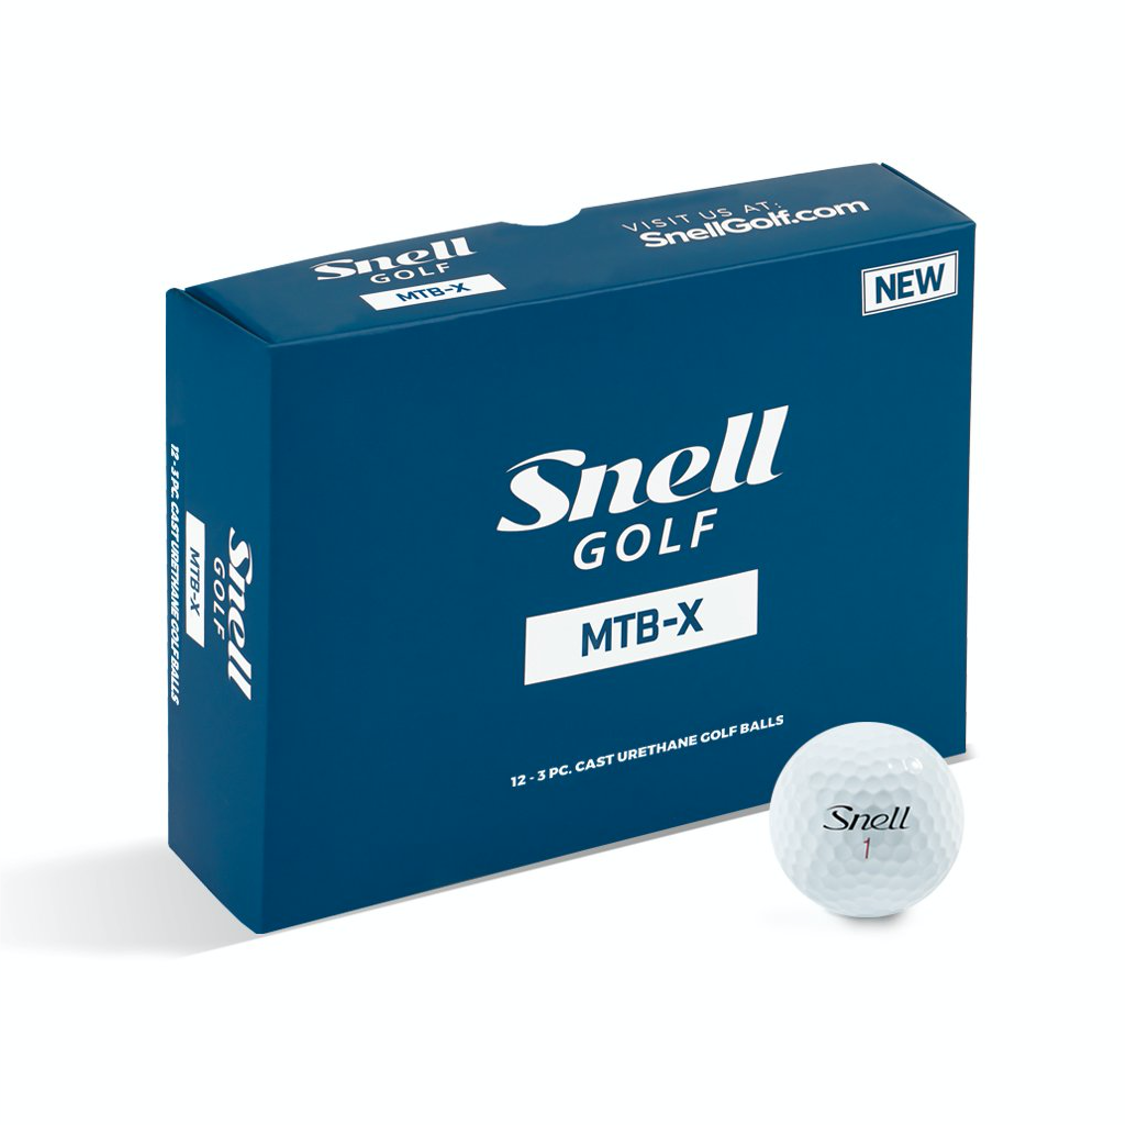 Snell golf balls with Shapland logo